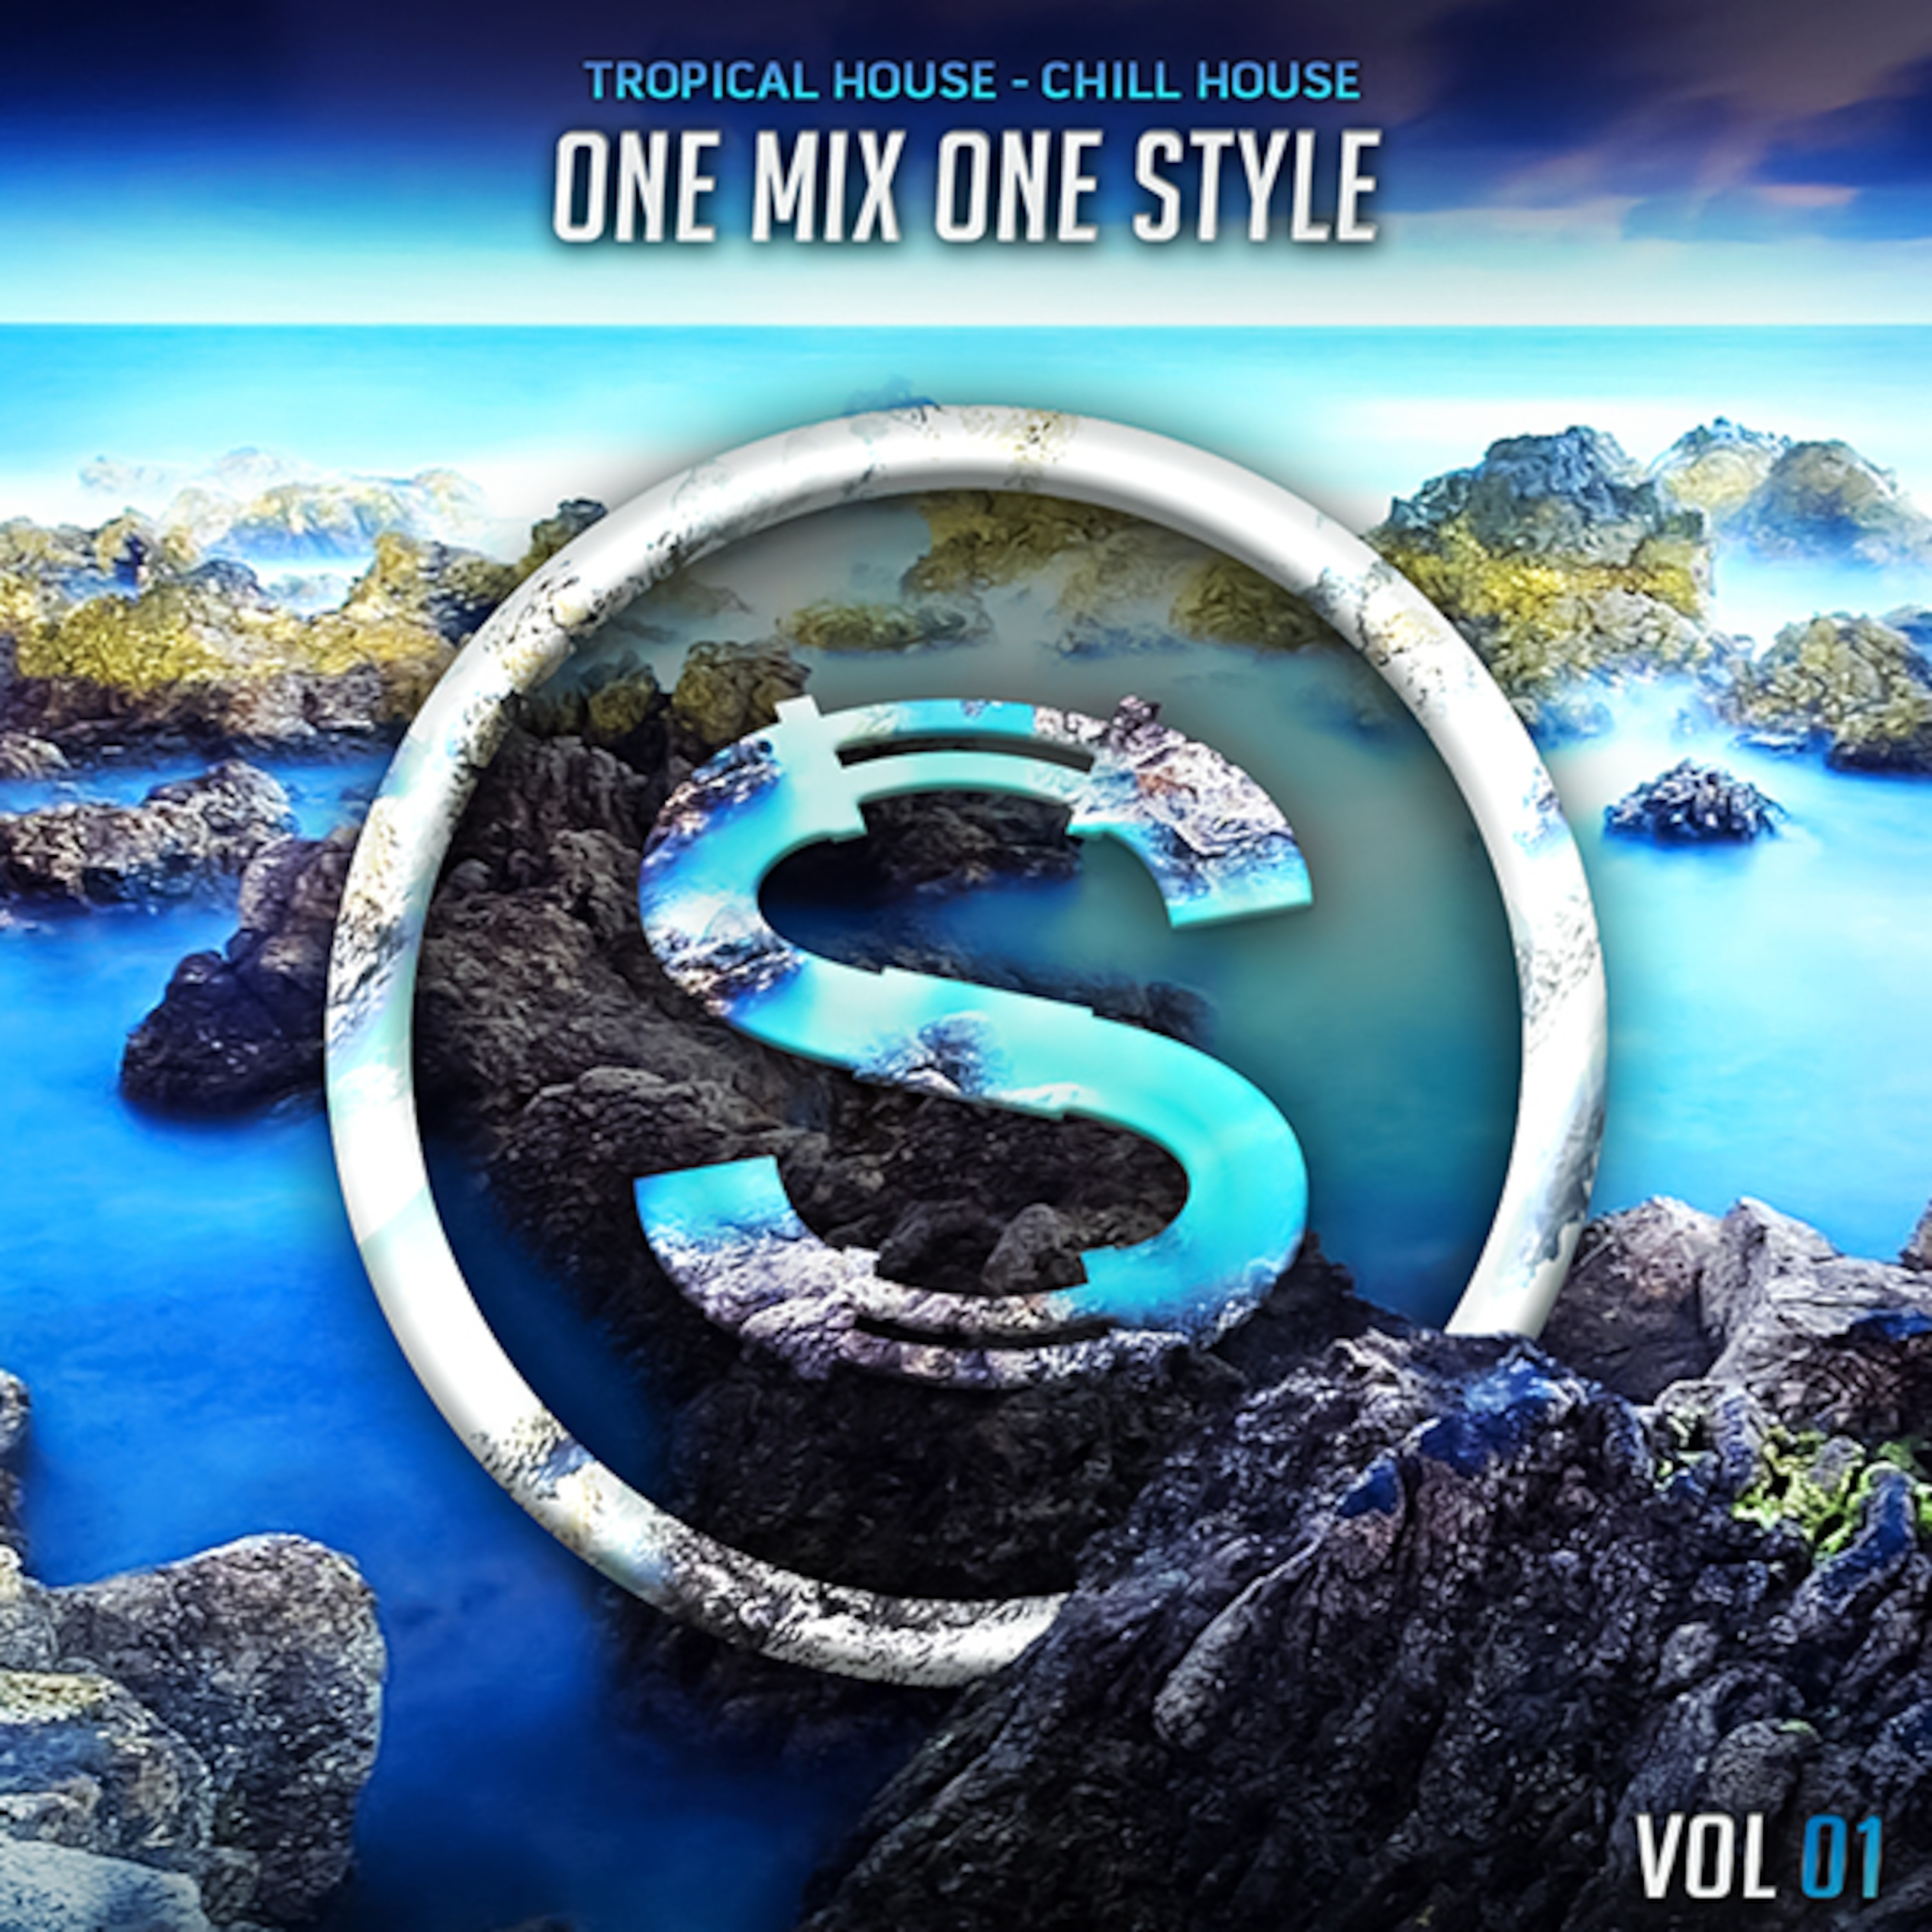 DA SYLVA - One Mix One Style VOL.1 (Tropical House - Chill House)